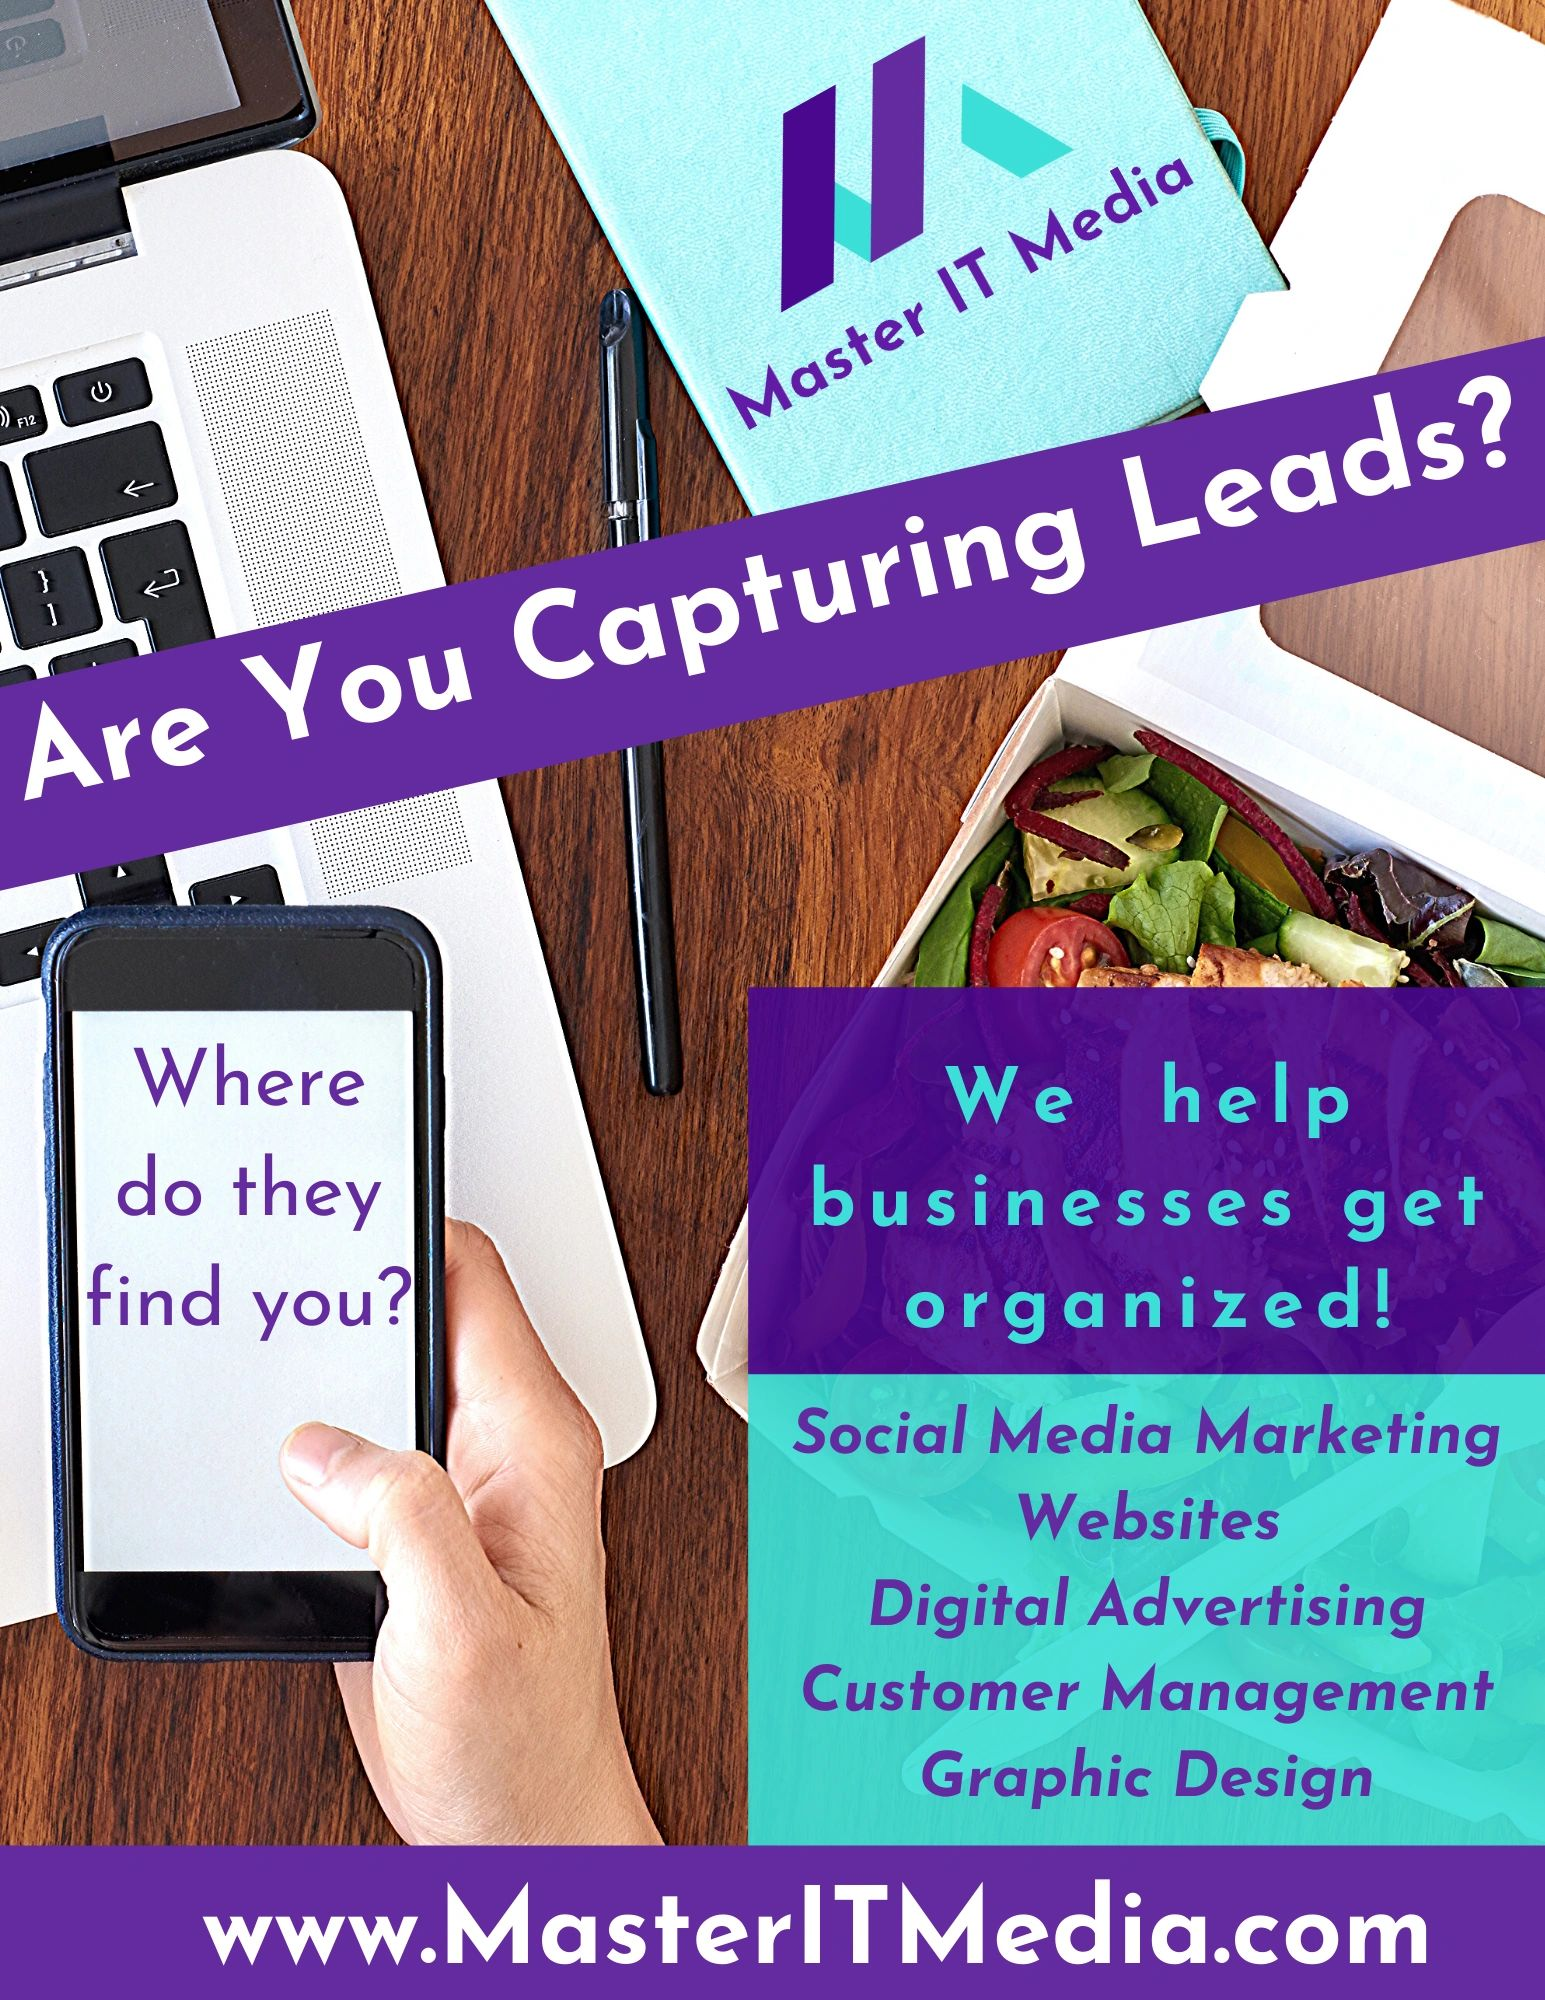 Are you capturing leads? We help businesses get organized.